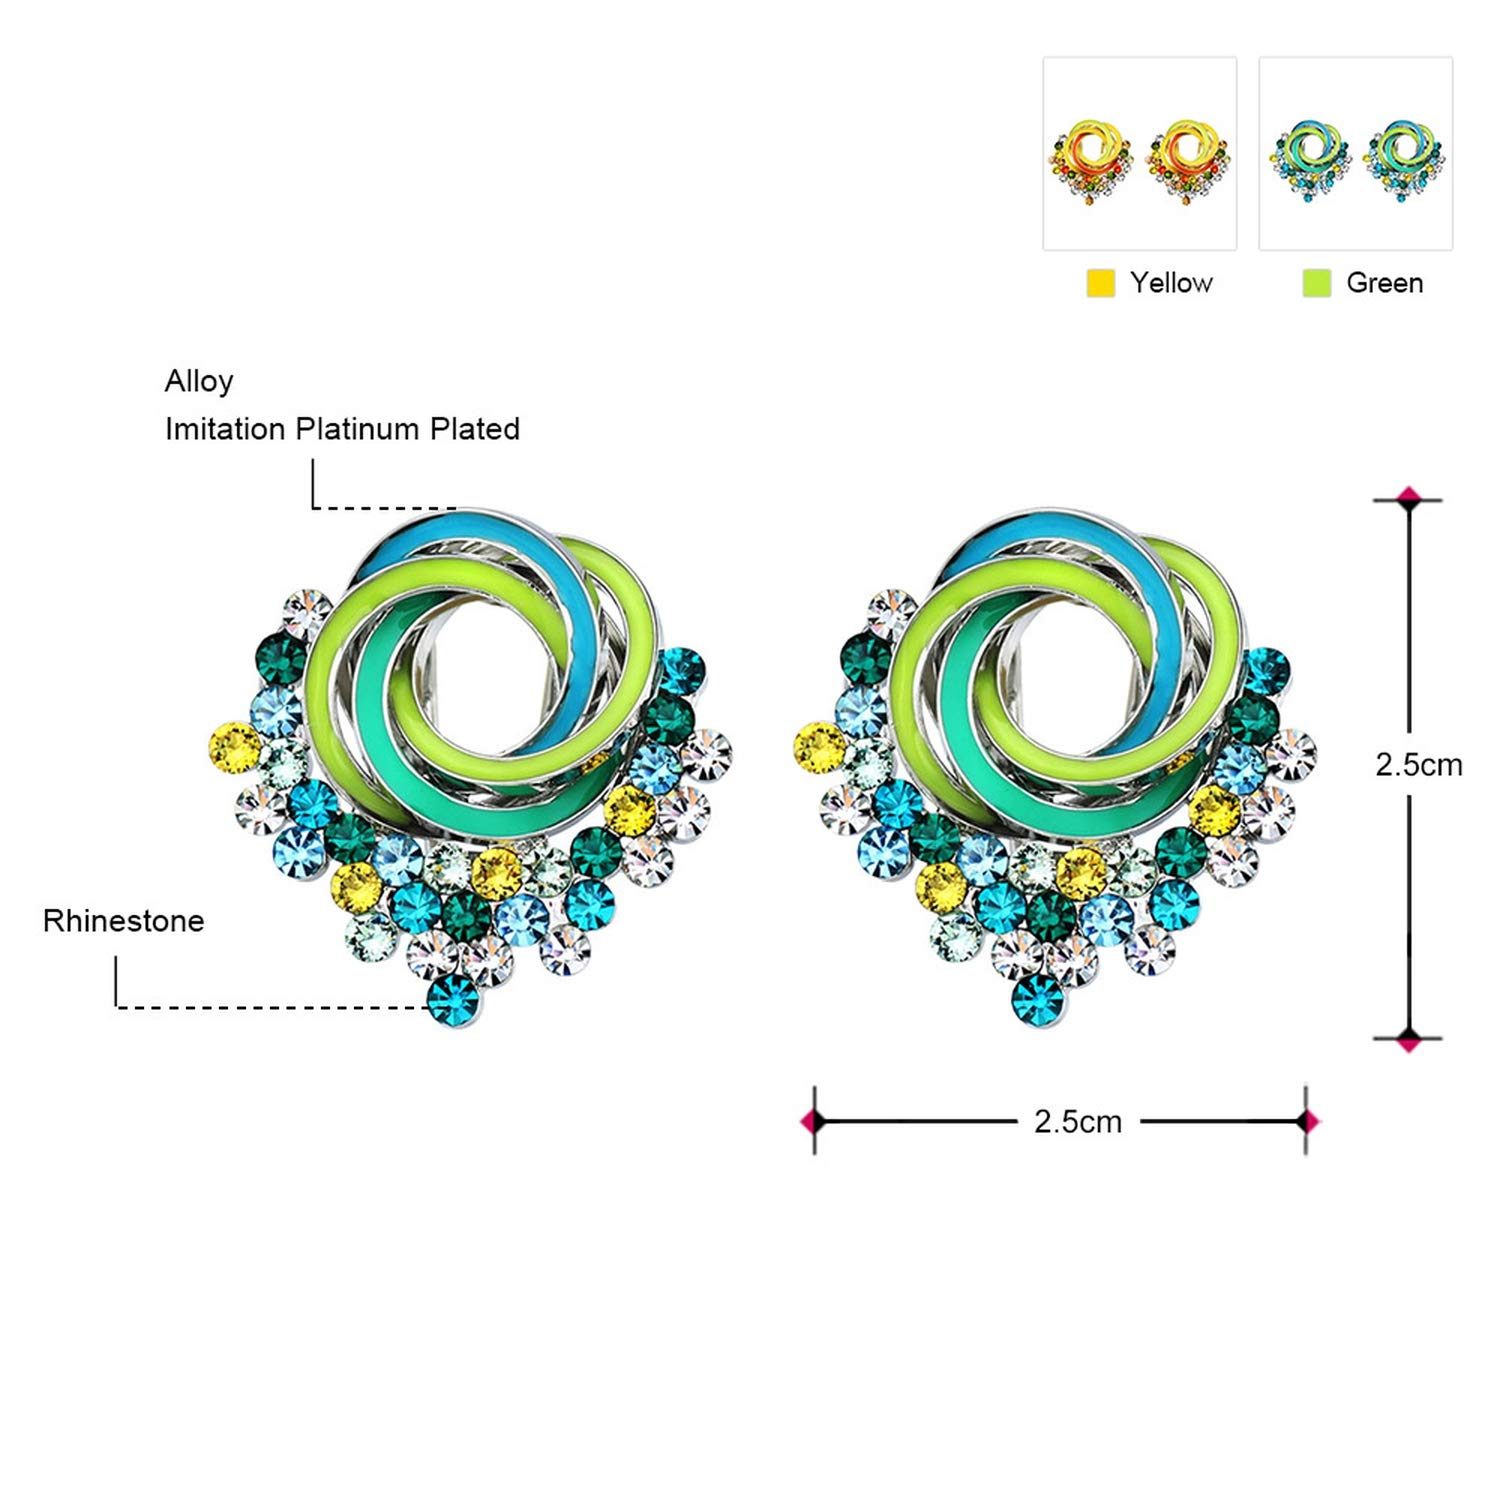 Multicolor Rhinestone Charm Cute Stud Earrings Girls Gifts Fashion Jewelry 2019 New Brand,Multicolour